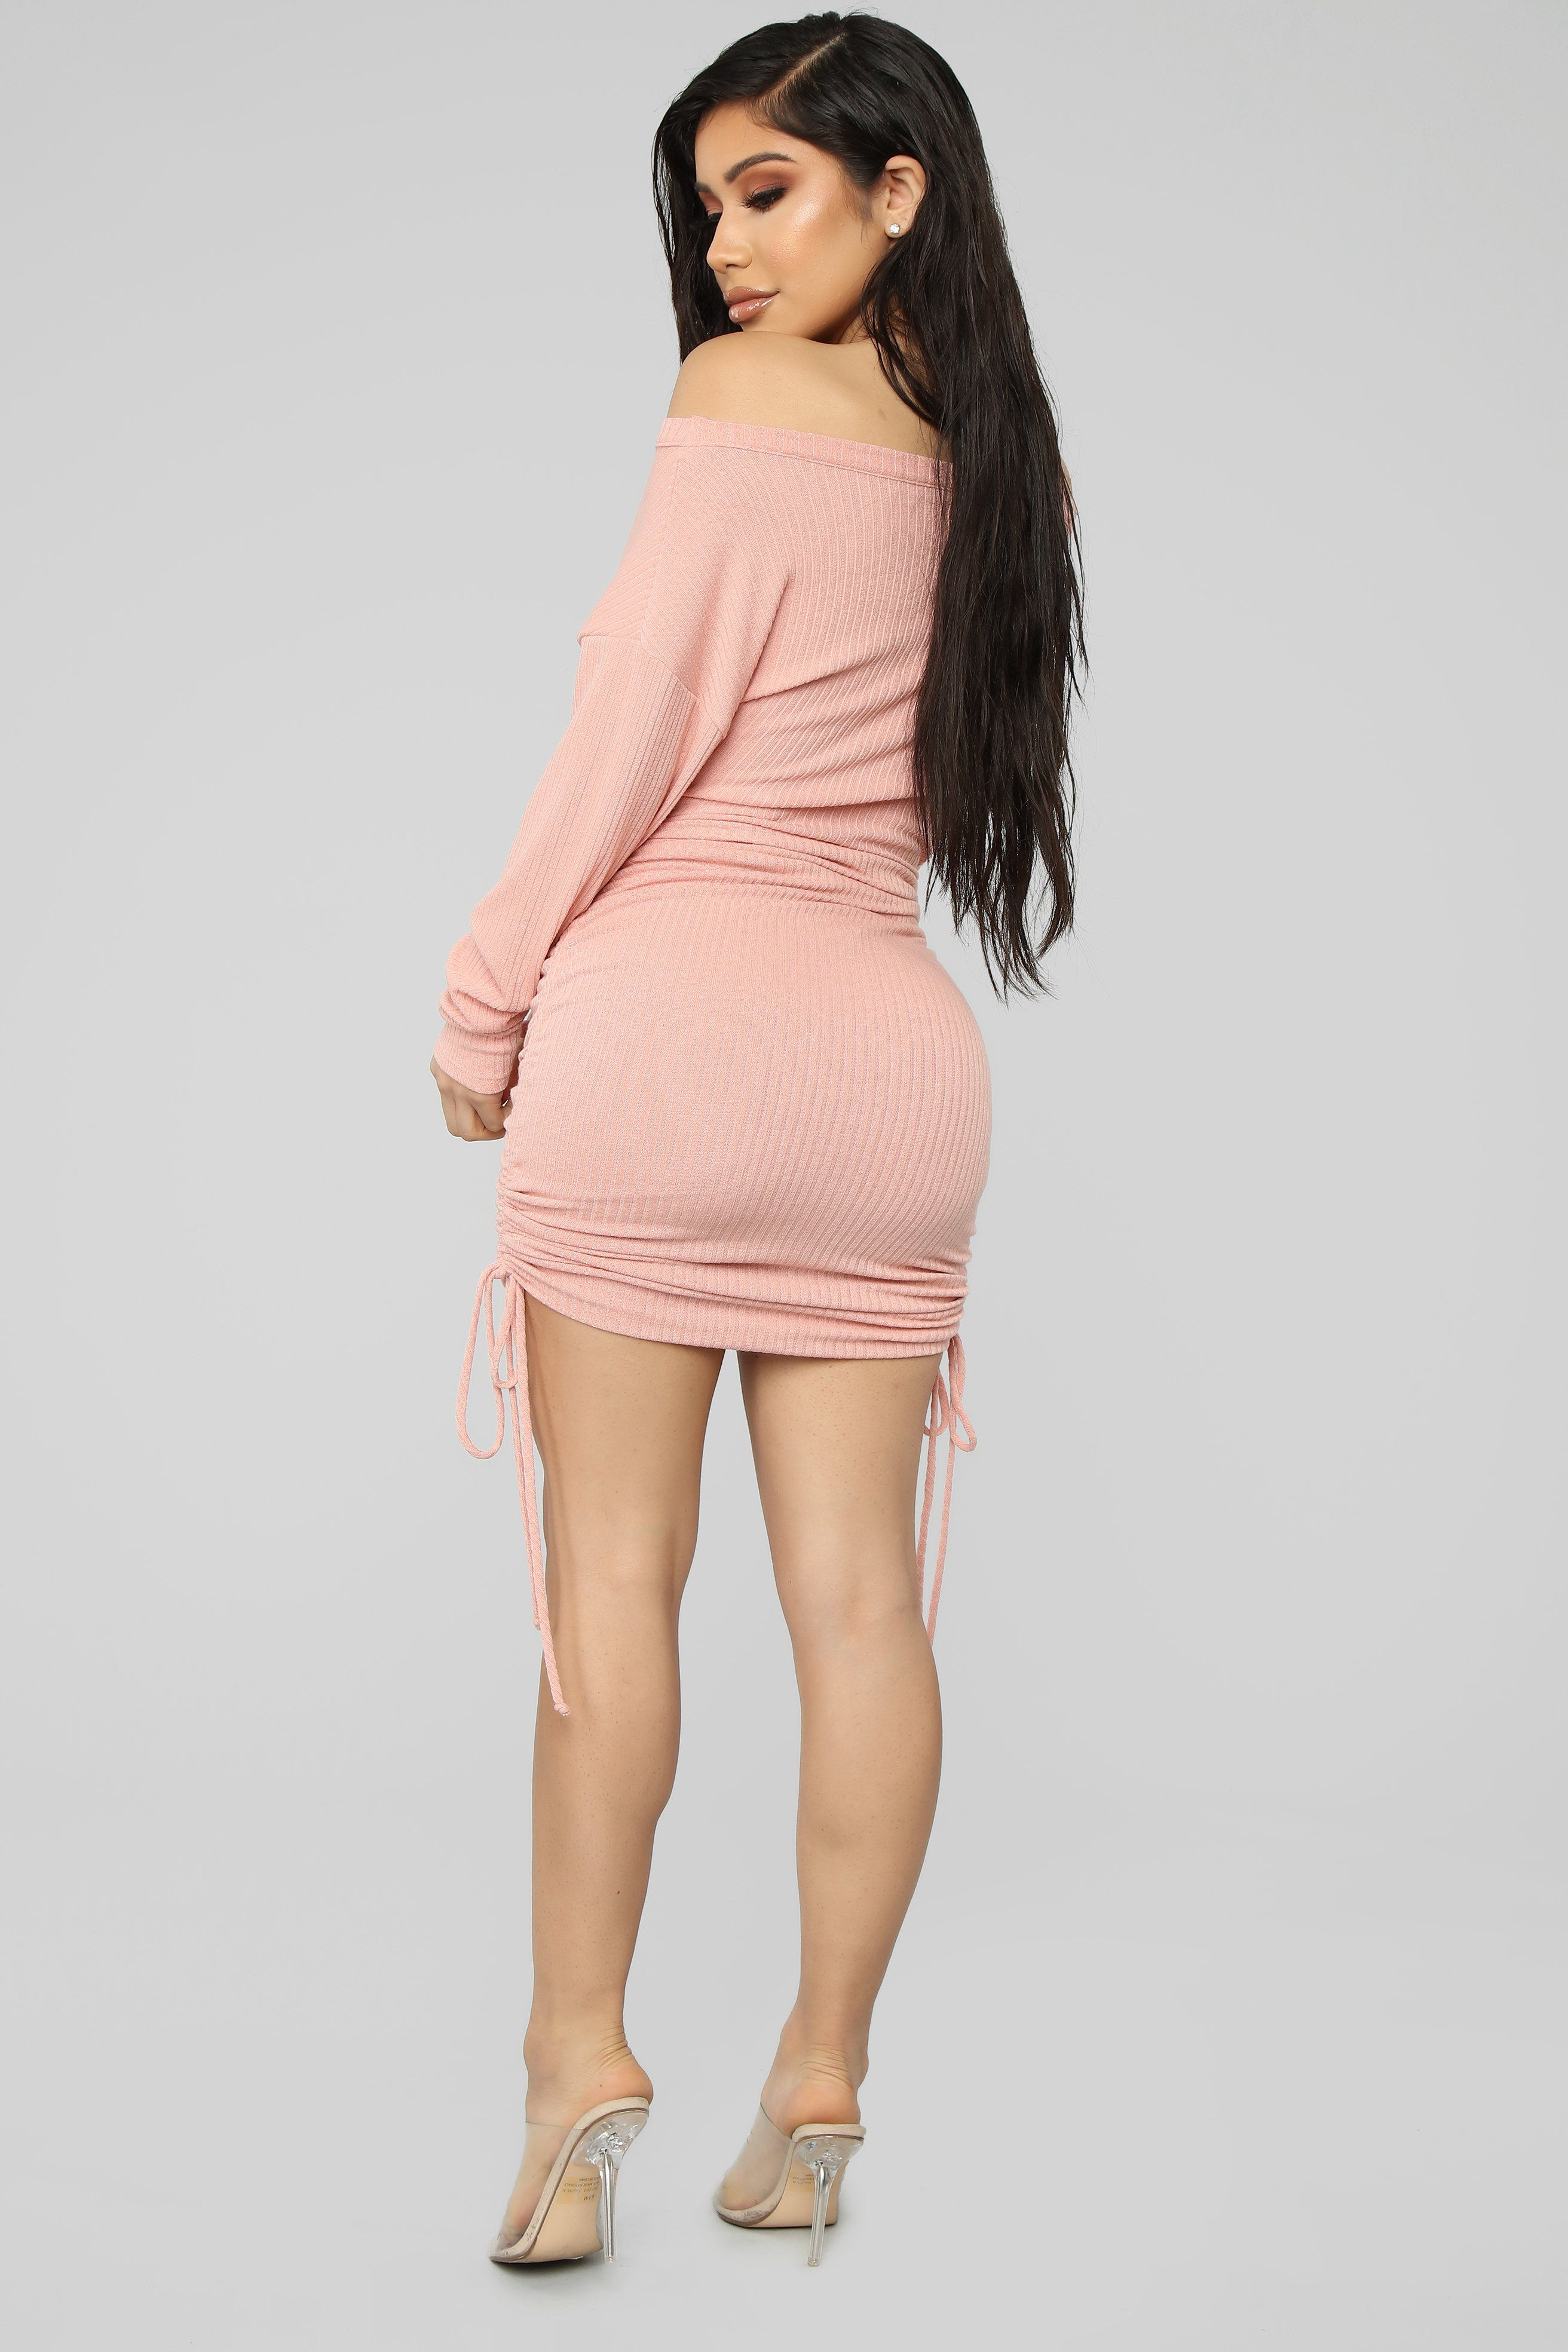 Draw Me In Sweater Mini Dress Blush In 2020 Business Casual Dresses Colourful Outfits Fashion